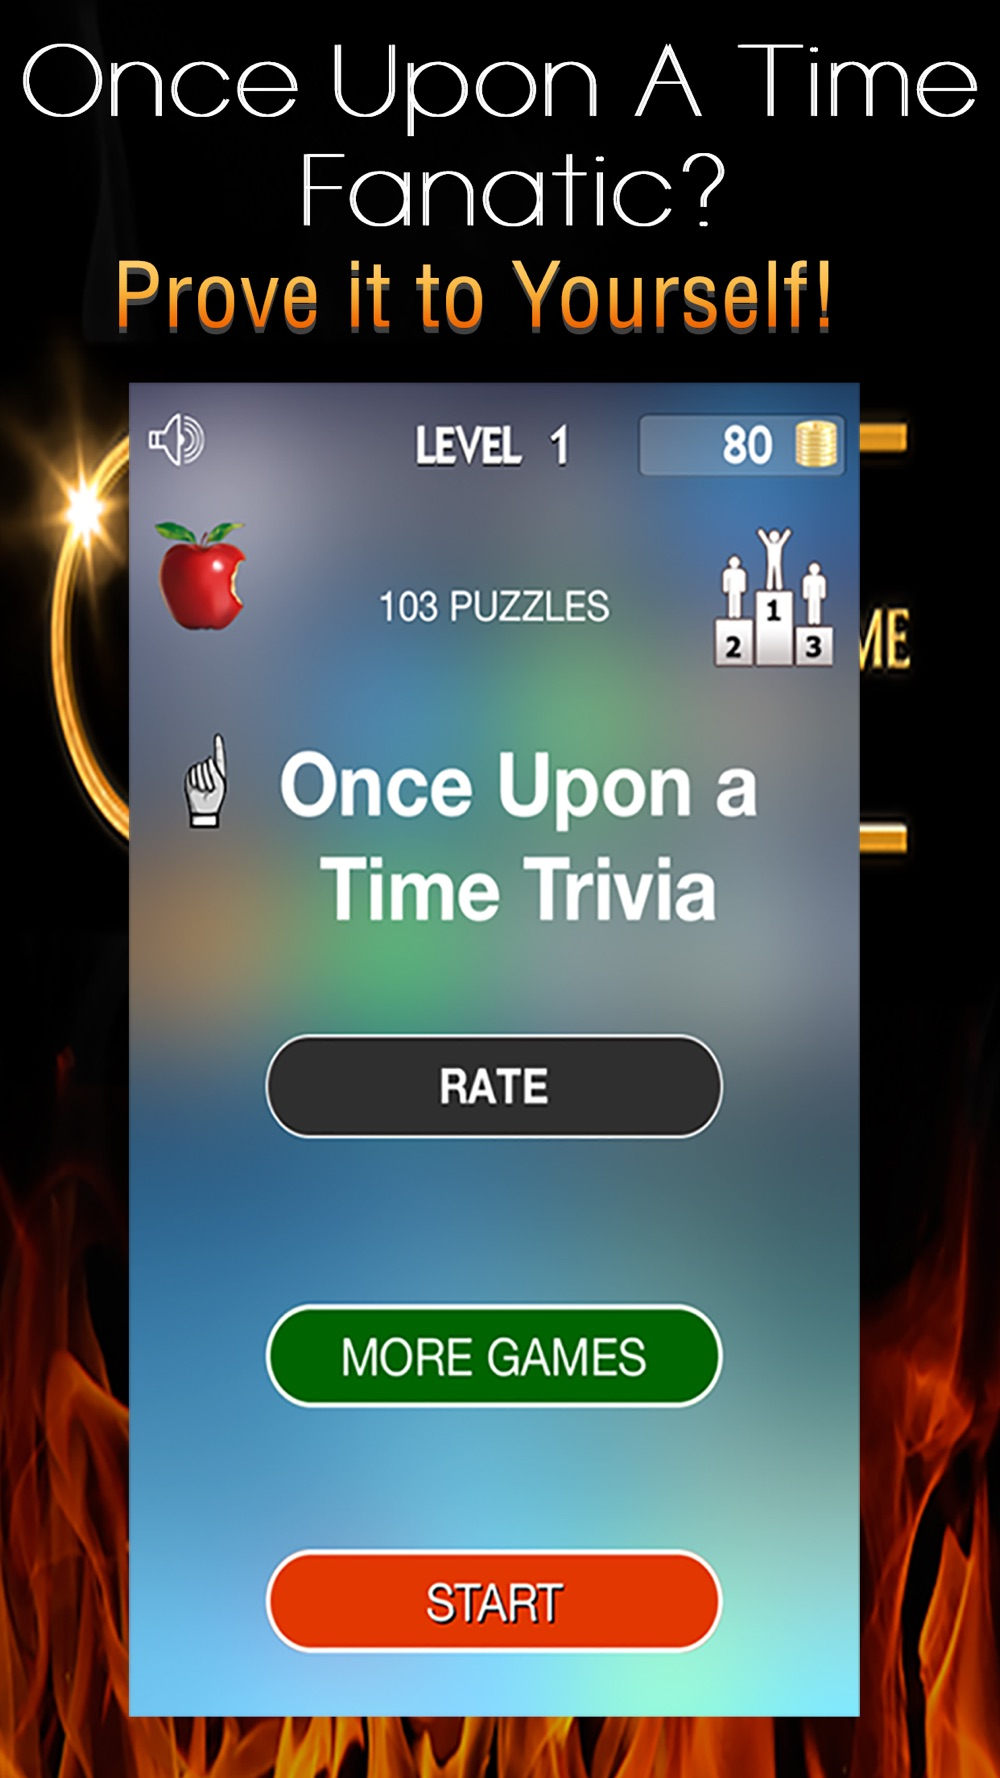 Ultimate Trivia App – Once Upon A Time Family Quiz Edition Cheat Codes